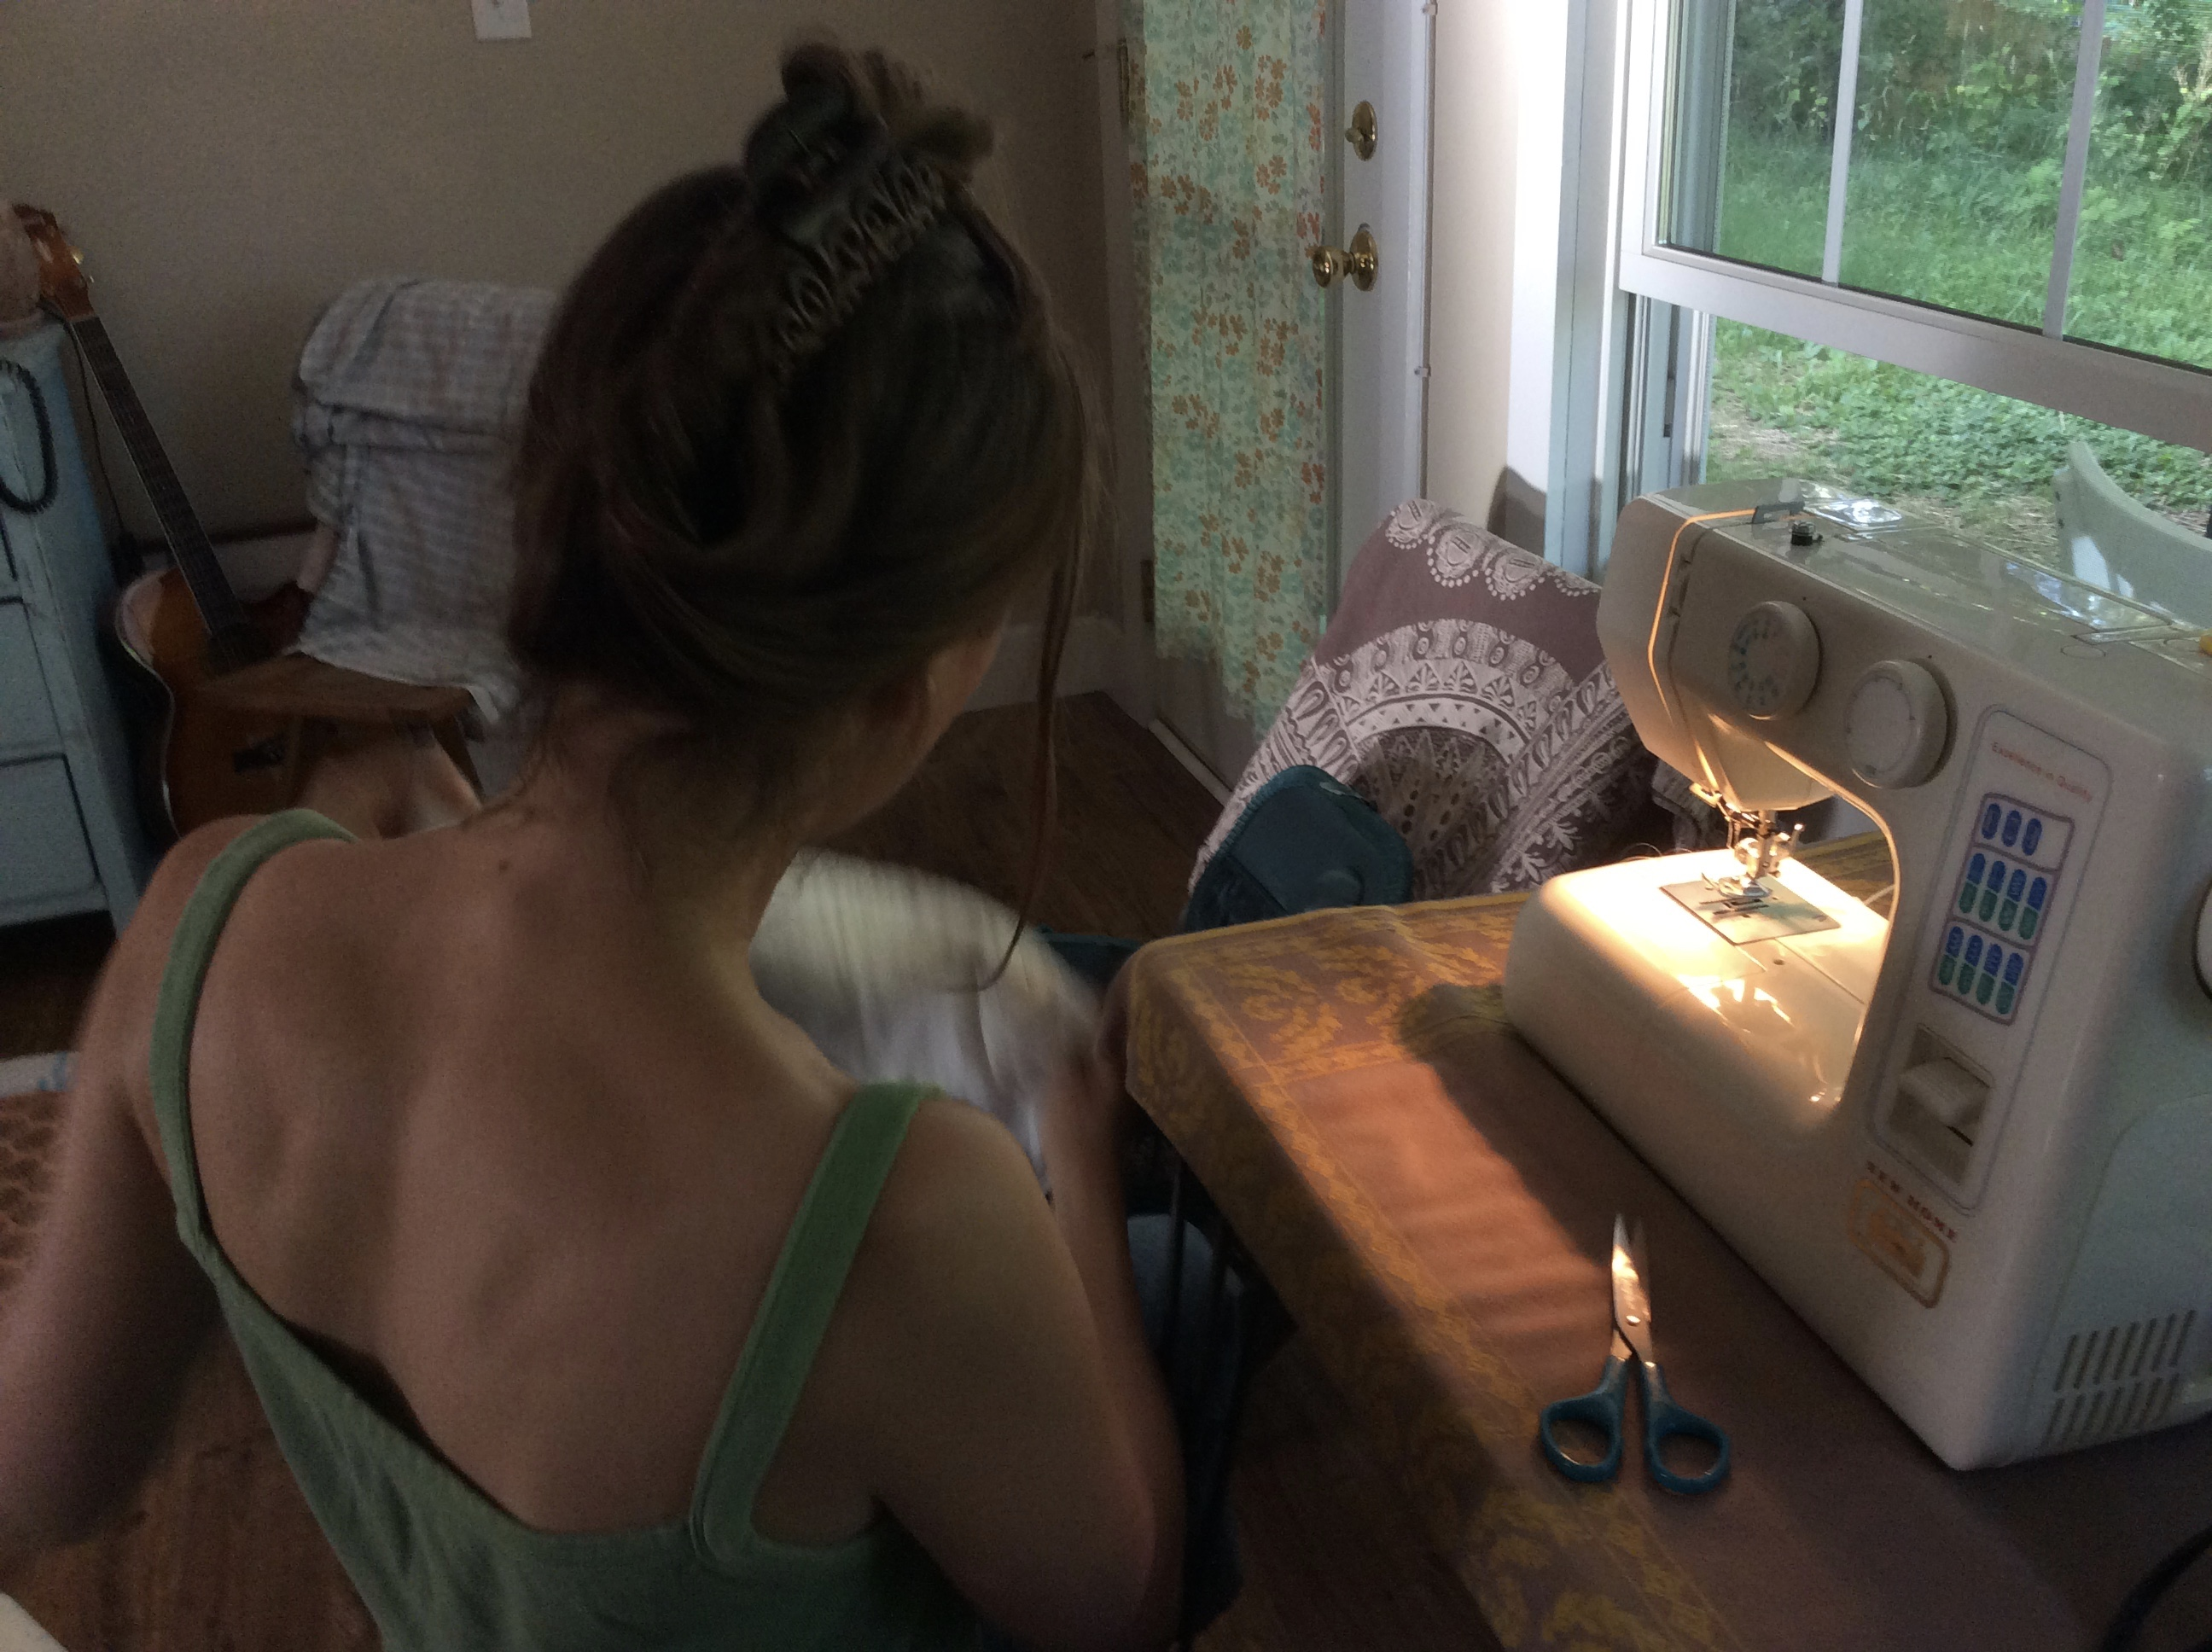 meditative sewing